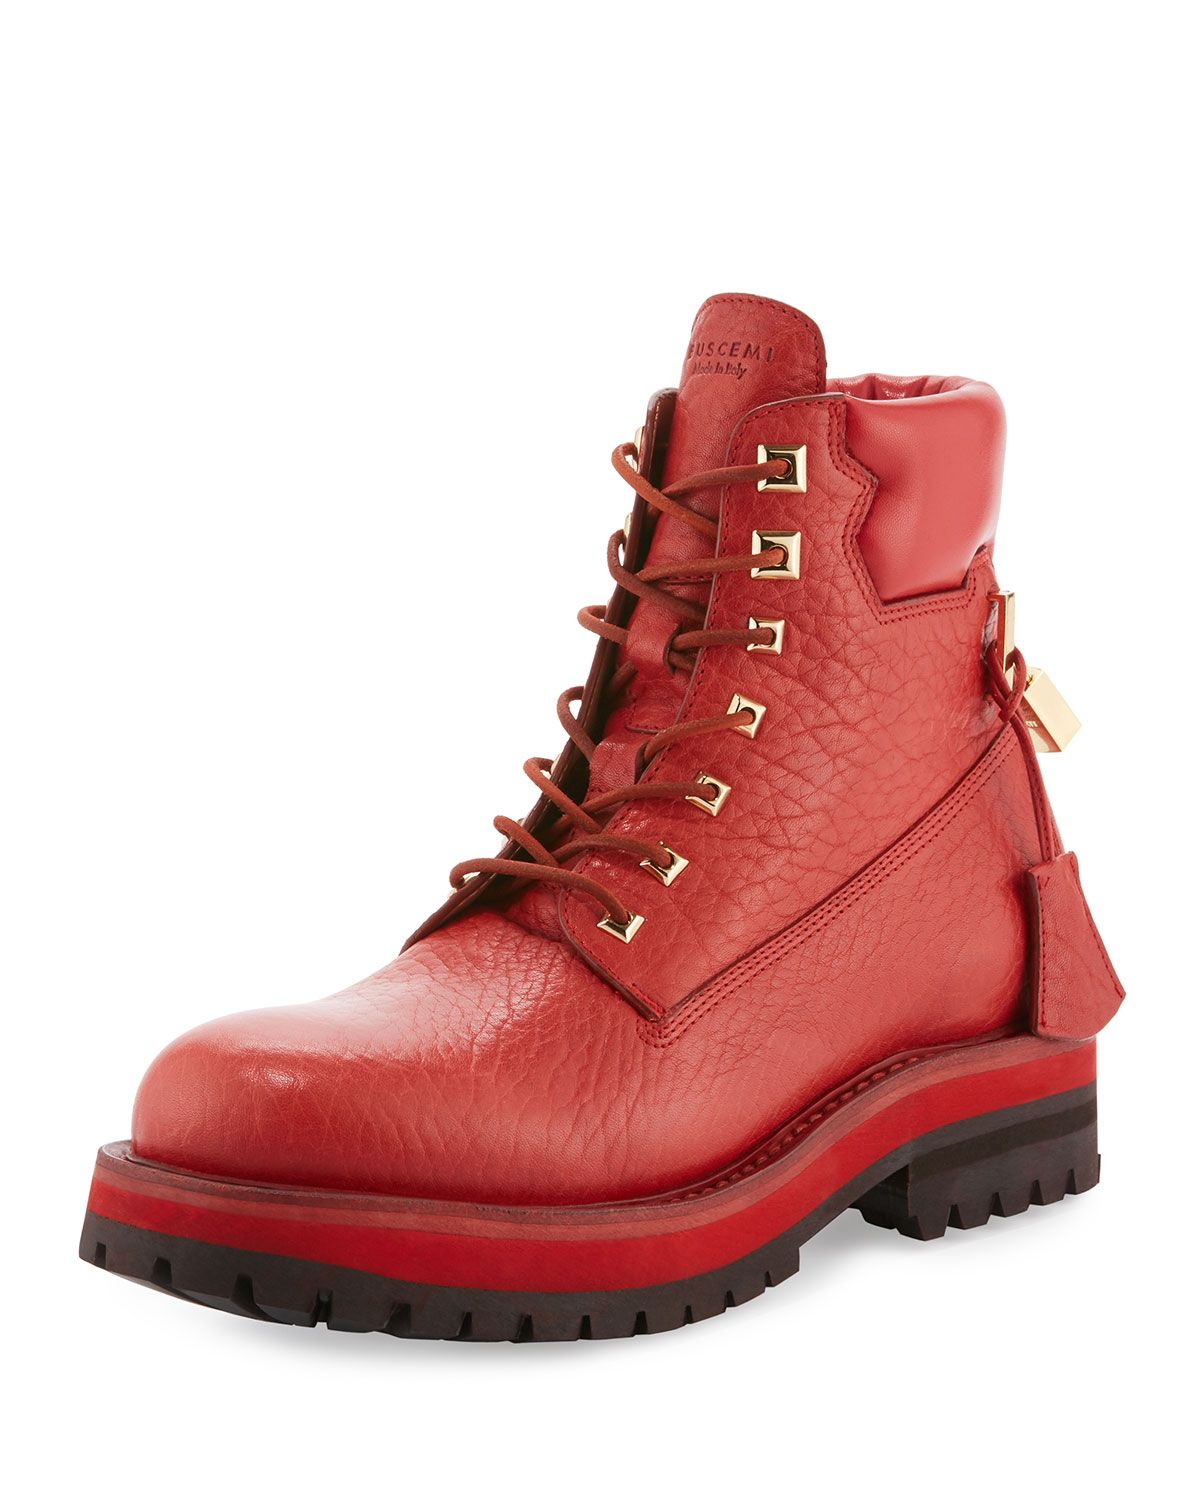 457e2d893 Buscemi Site Leather Lace-Up Hiking Boot in 2019 | *Neiman Marcus ...